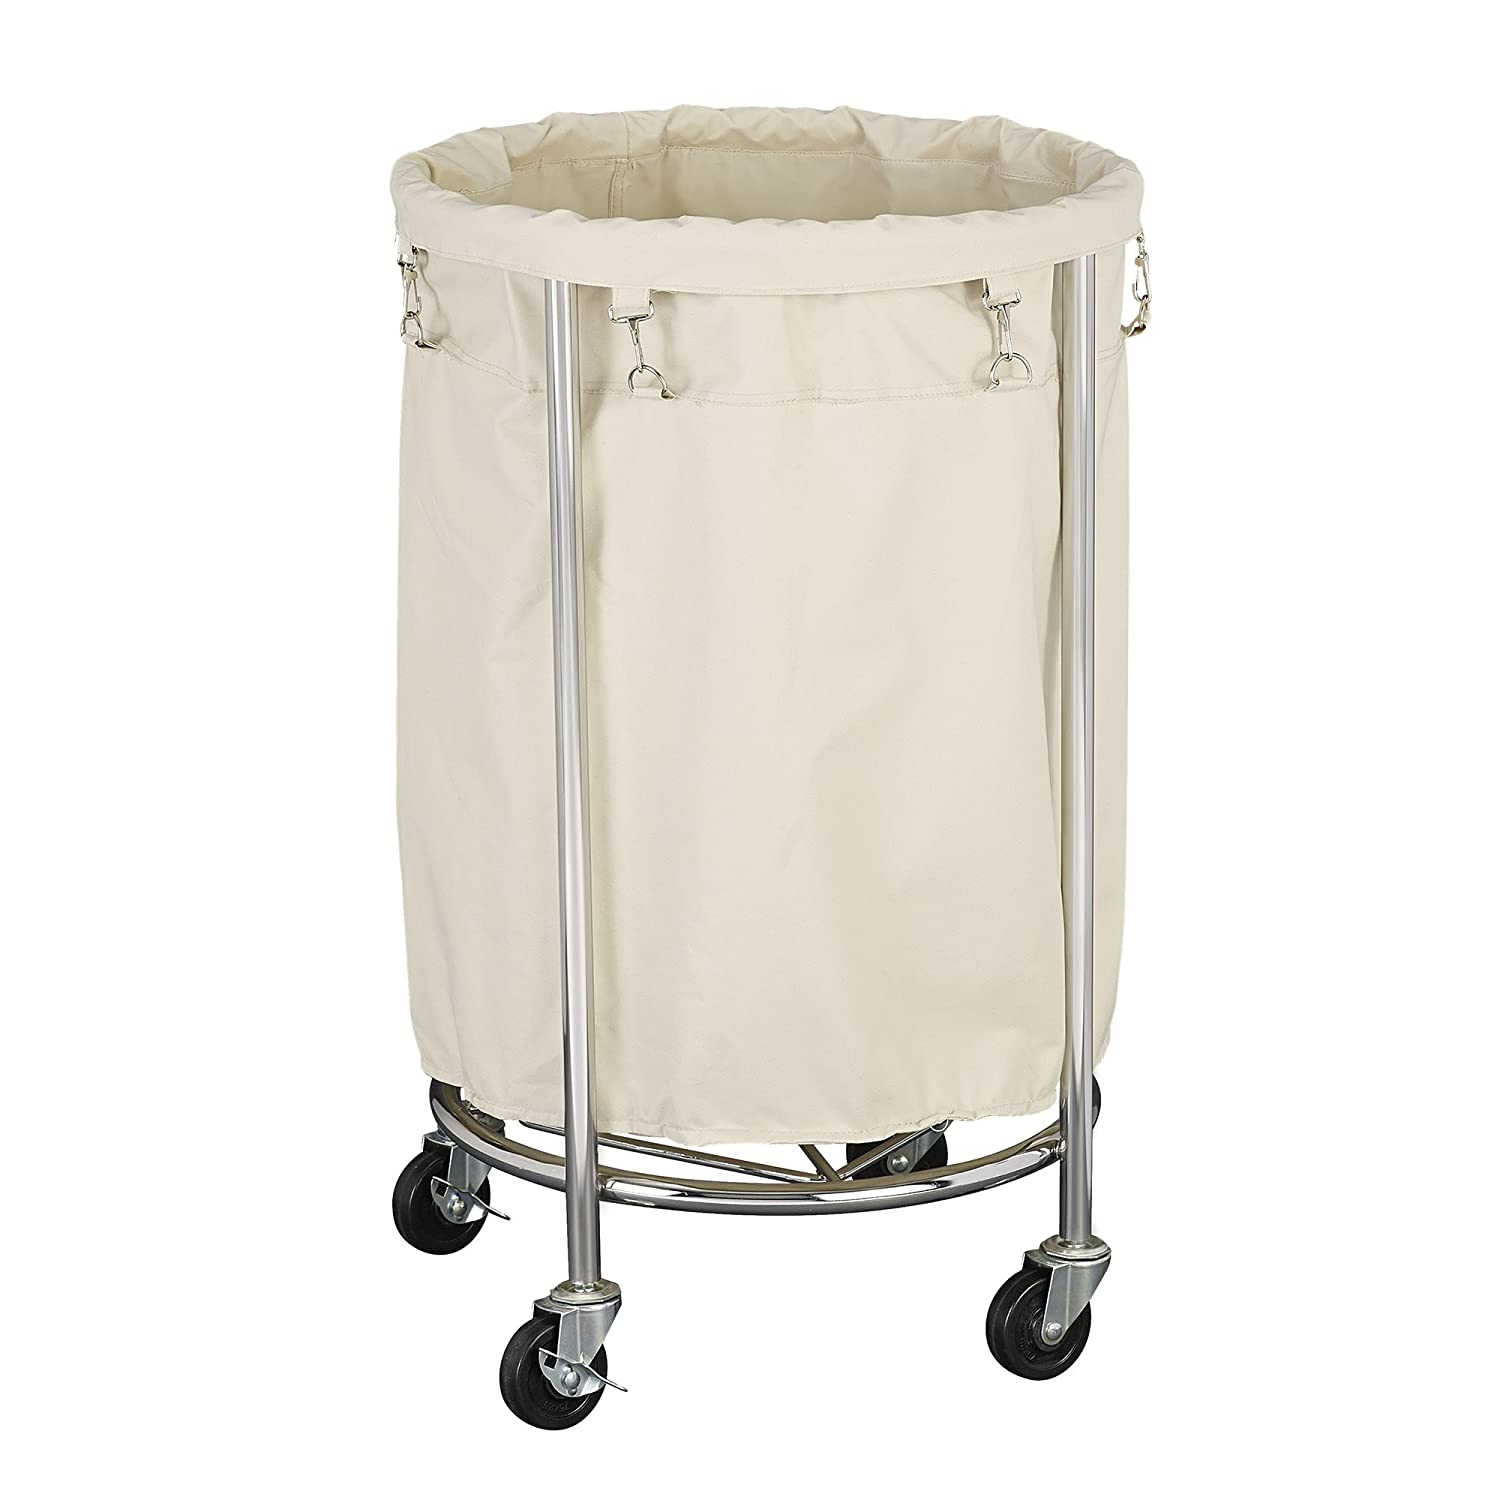 Laundry Hamper With Wheels Part - 25: Amazon.com: Household Essentials Commercial Round Laundry Hamper: Home U0026  Kitchen